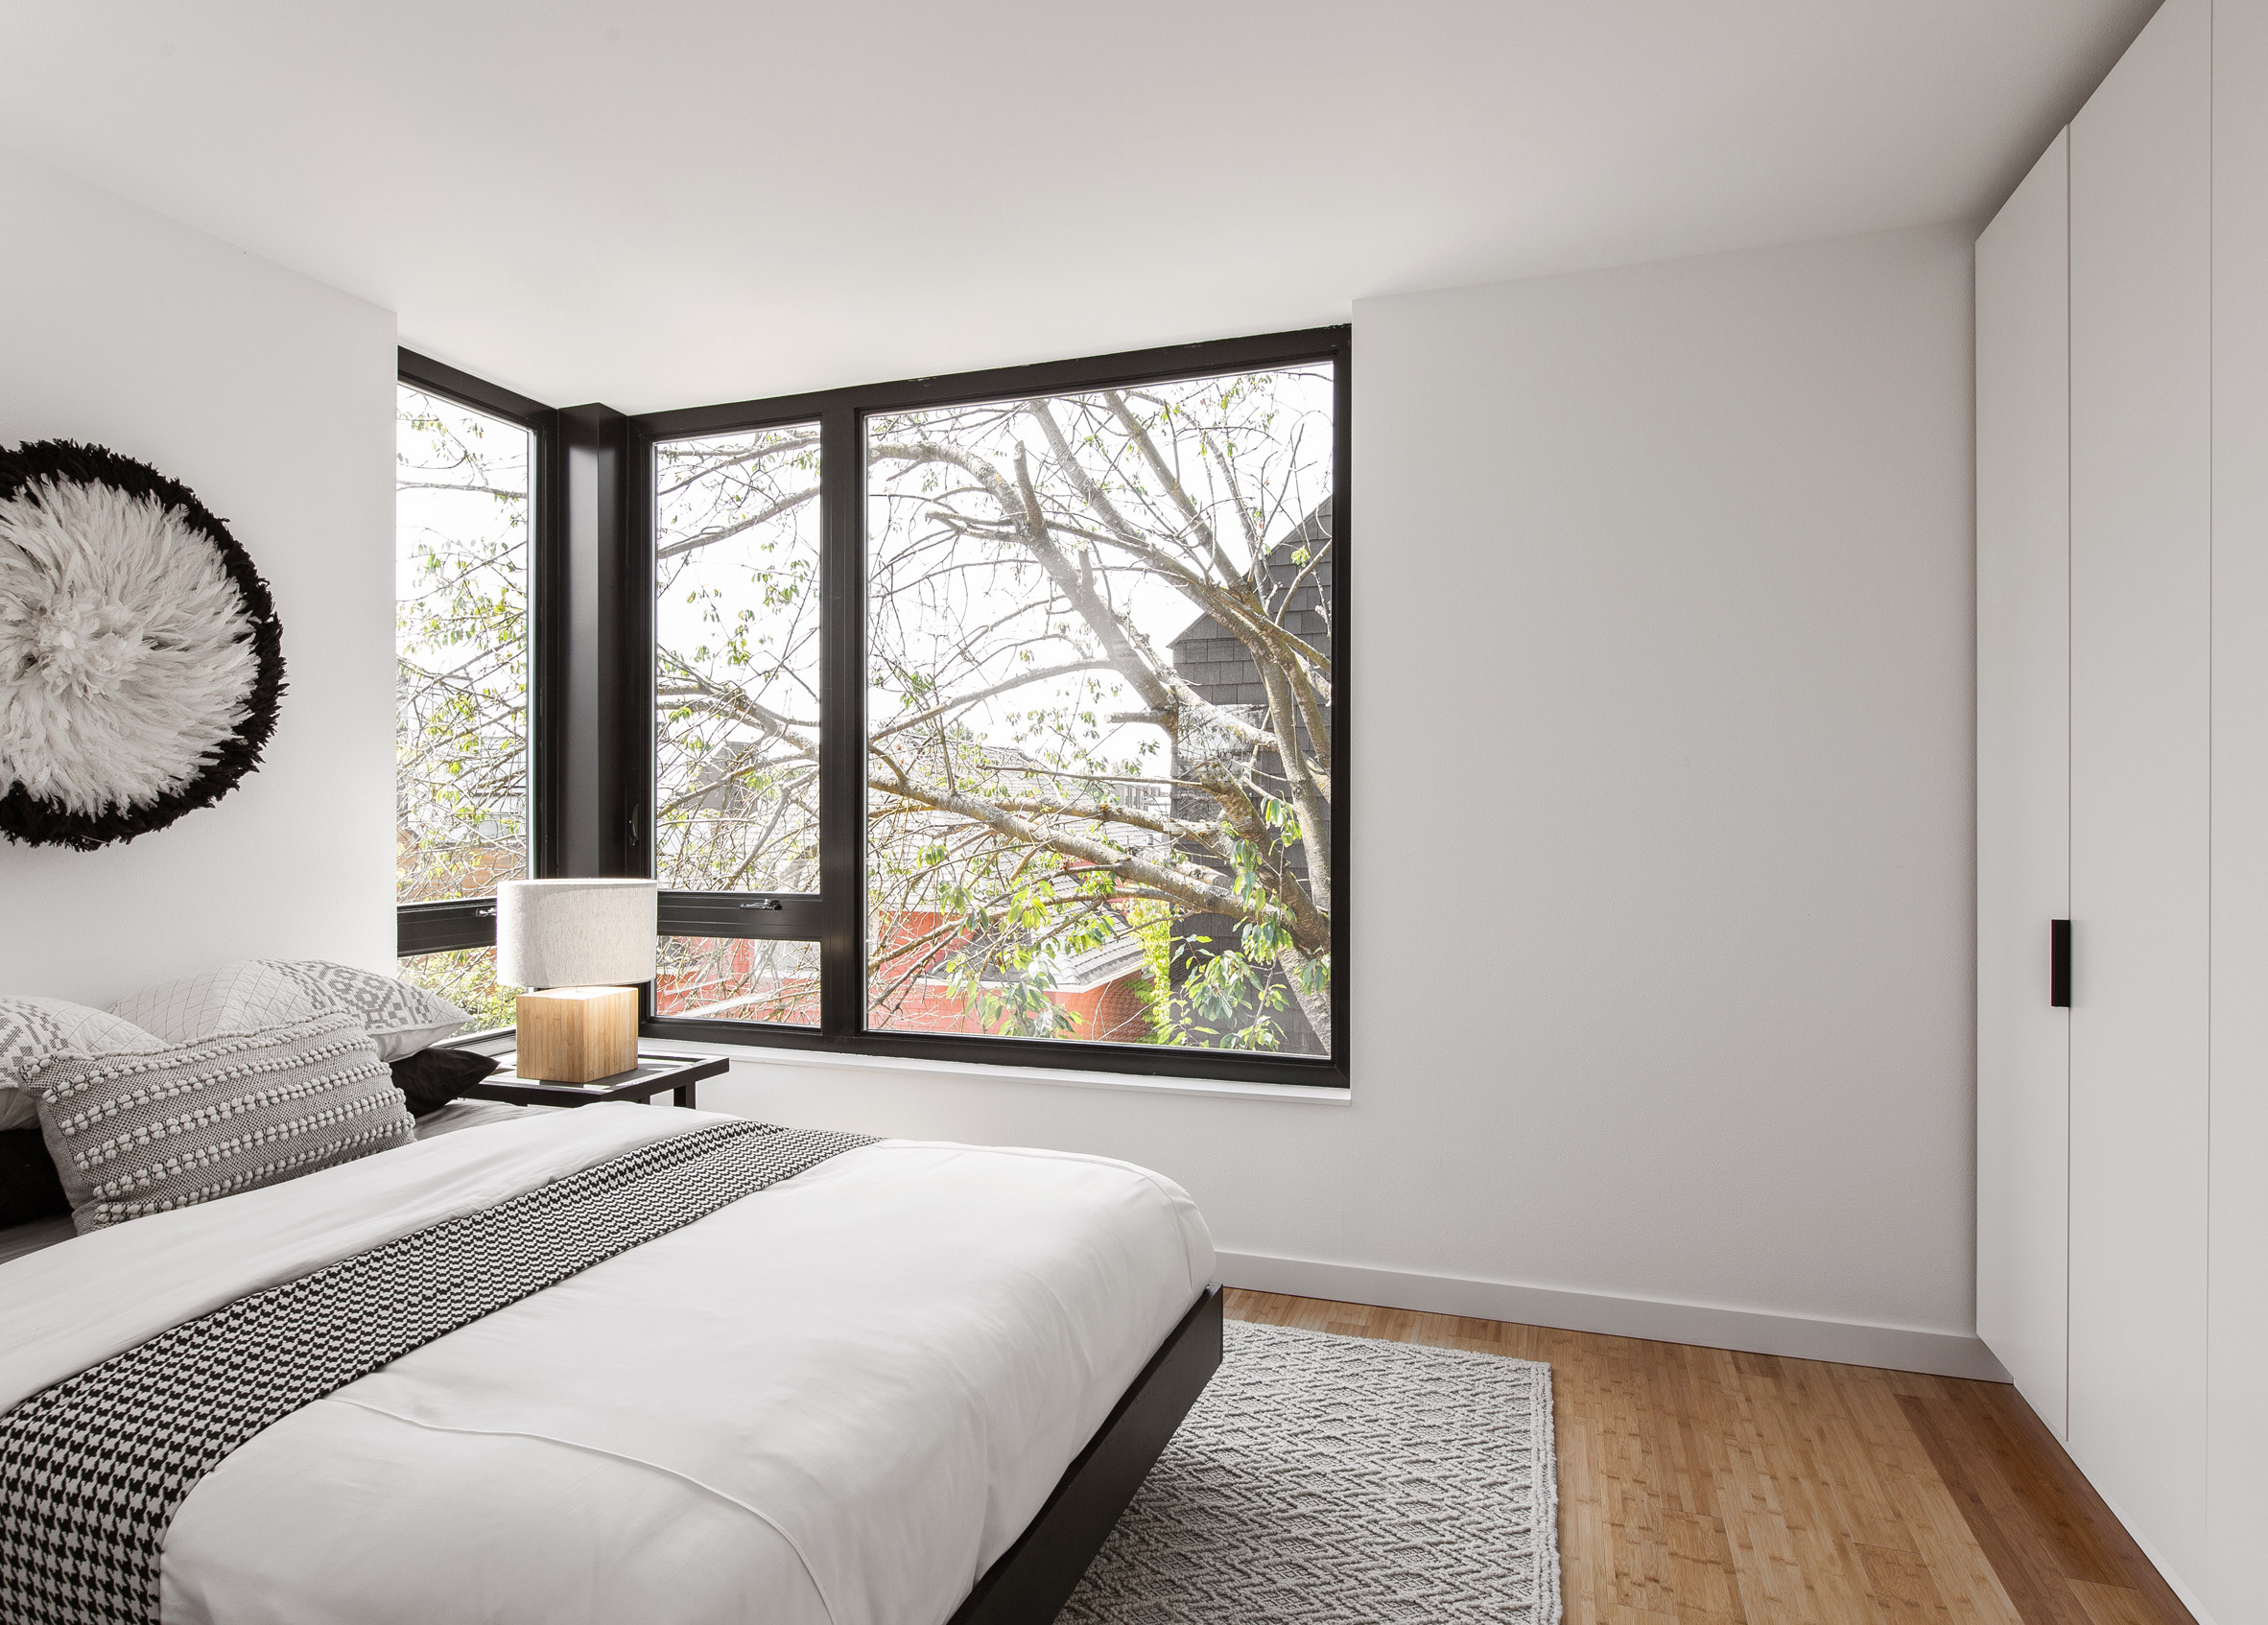 Bedroom of house in Seattle